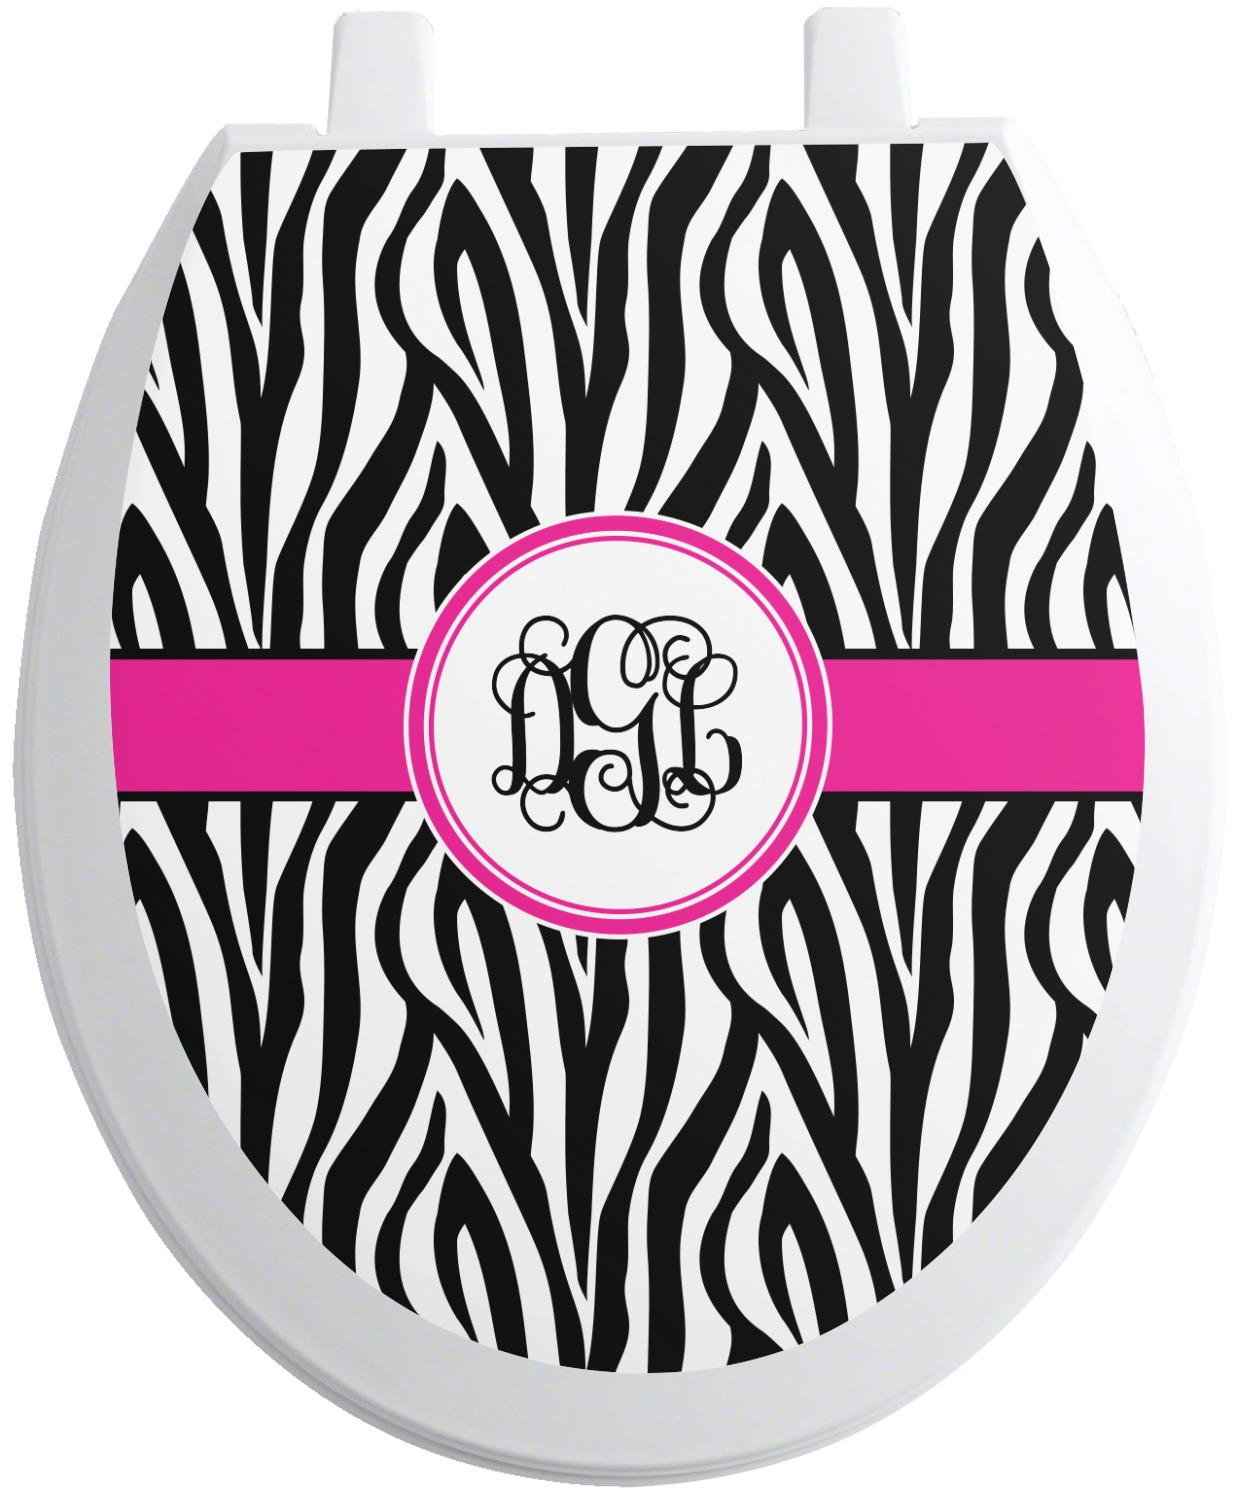 zebra print toilet seat decal round personalized. Black Bedroom Furniture Sets. Home Design Ideas